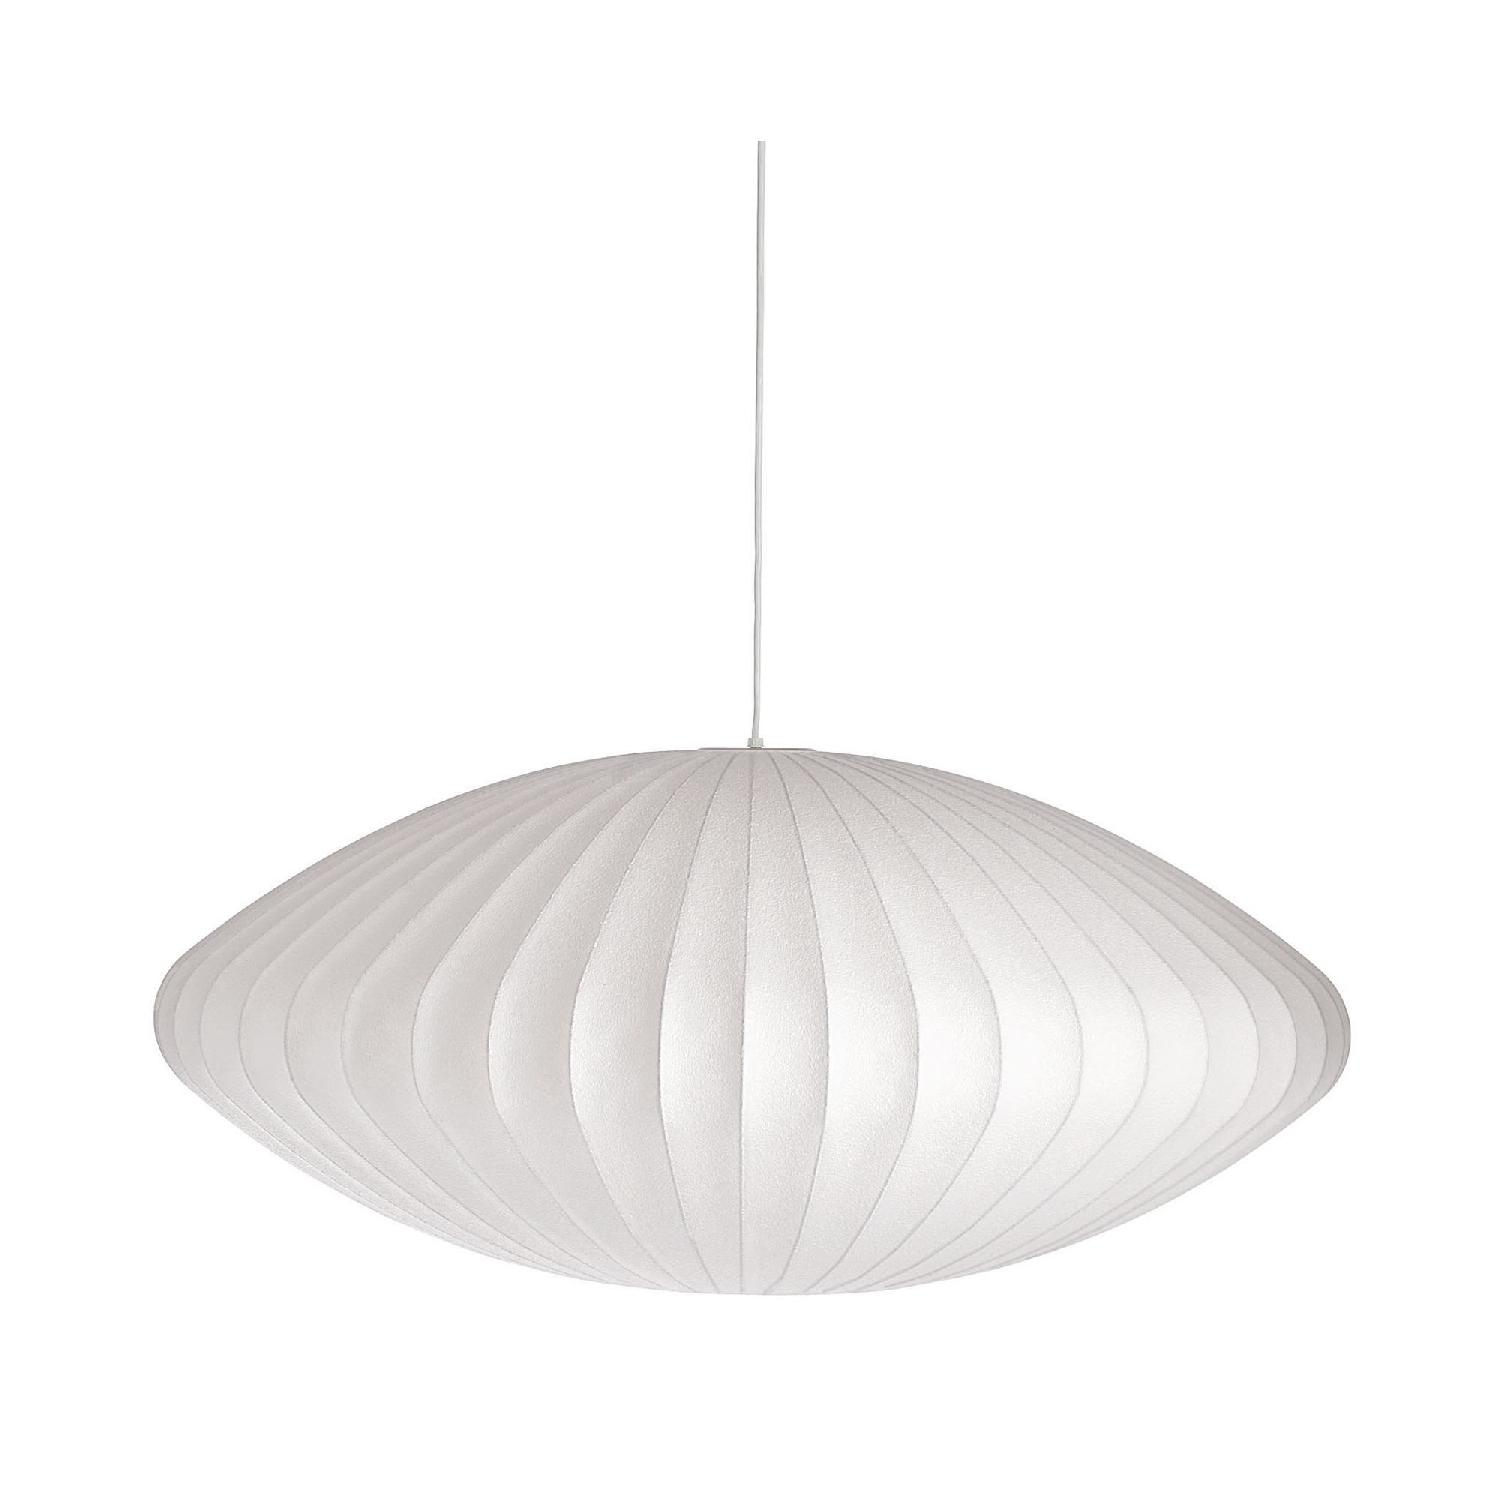 Design Within Reach Nelson Saucer Medium Pendant Lamp - image-2